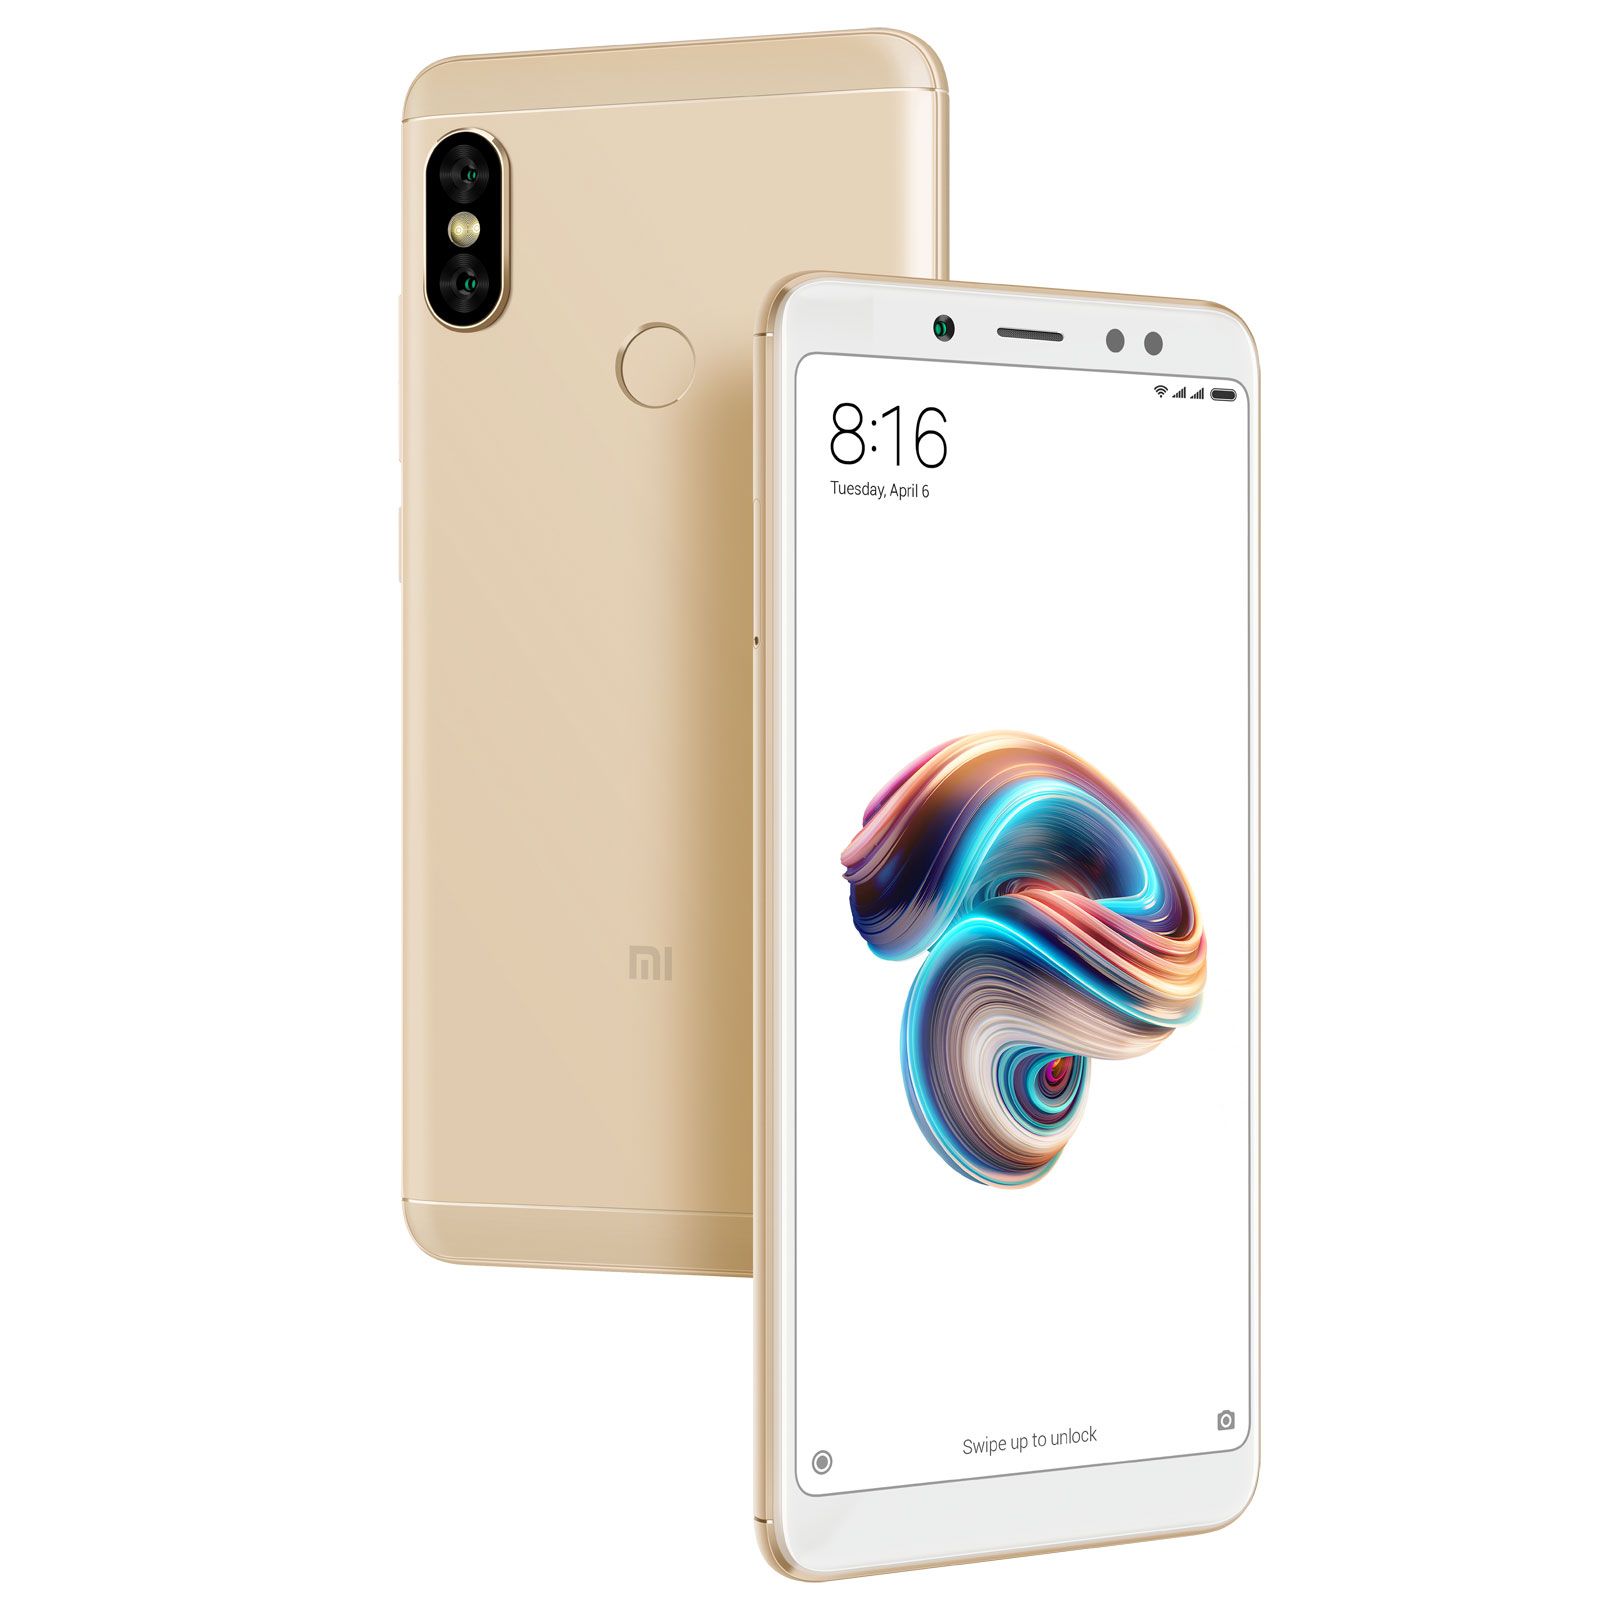 "Mobile & smartphone Xiaomi Redmi Note 5 Or (3 Go / 32 Go) Smartphone 4G-LTE Dual SIM - Snapdragon 636 Octo-Core 1.8 GHz - RAM 3 Go - Ecran tactile 5.99"" 1080 x 2160 - 32 Go - NFC/Bluetooth 5.0 - 4000 mAh - Android 8.1"